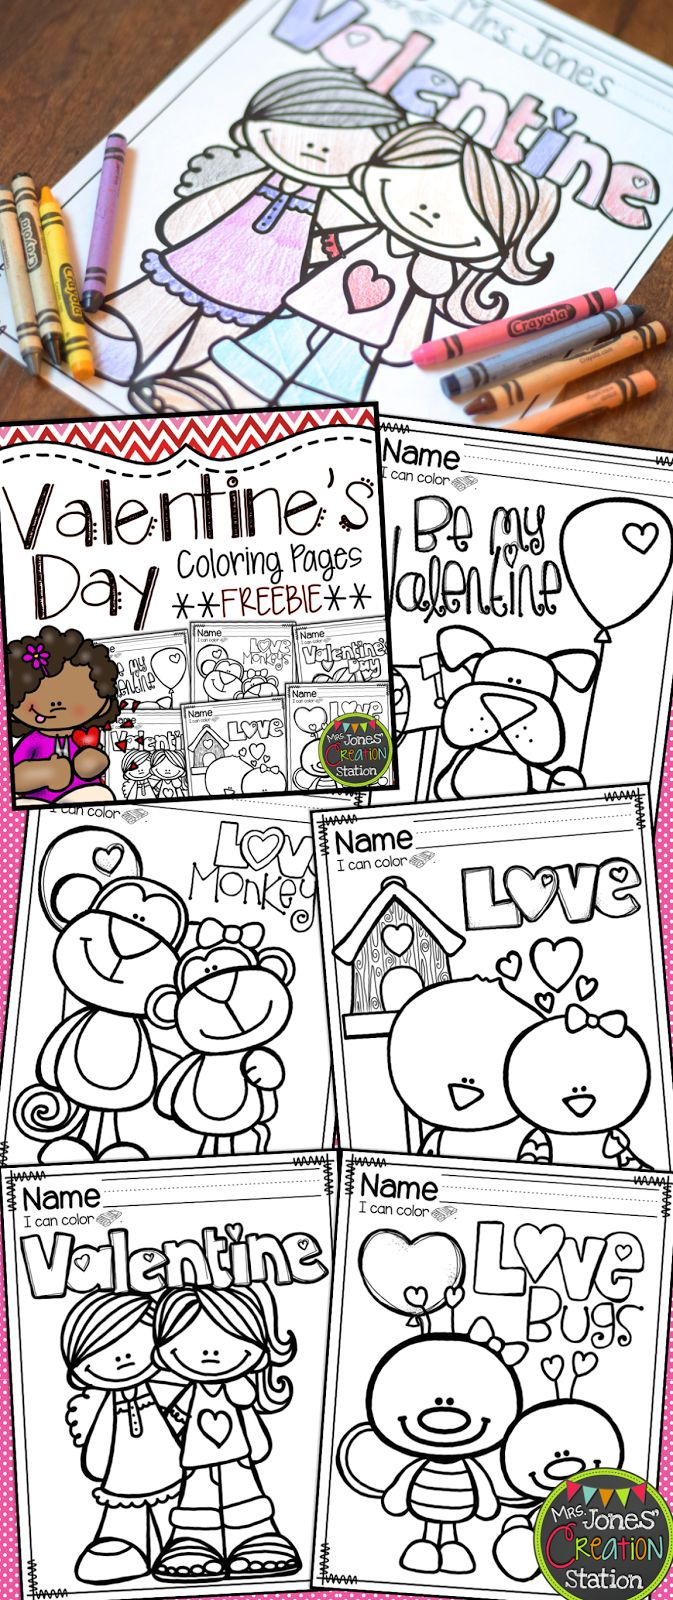 starfall coloring pages Download-Valentine s Day Coloring Pages FREEBIE 20-j